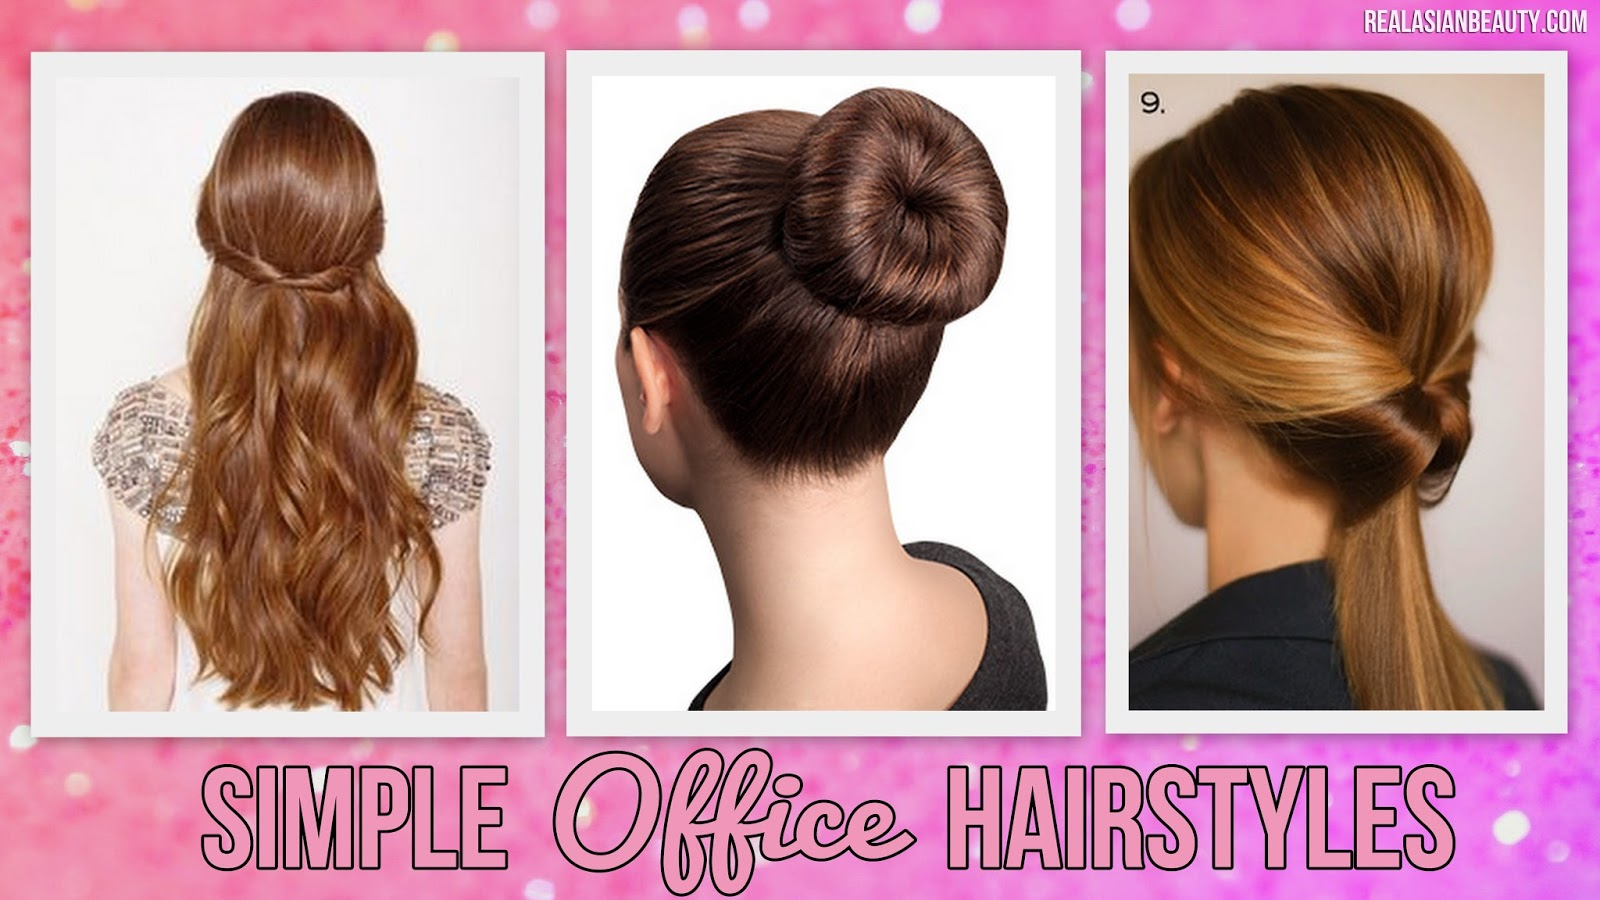 Easy Hairstyle For Daily Office : Real asian beauty easy office hairstyles for on the go